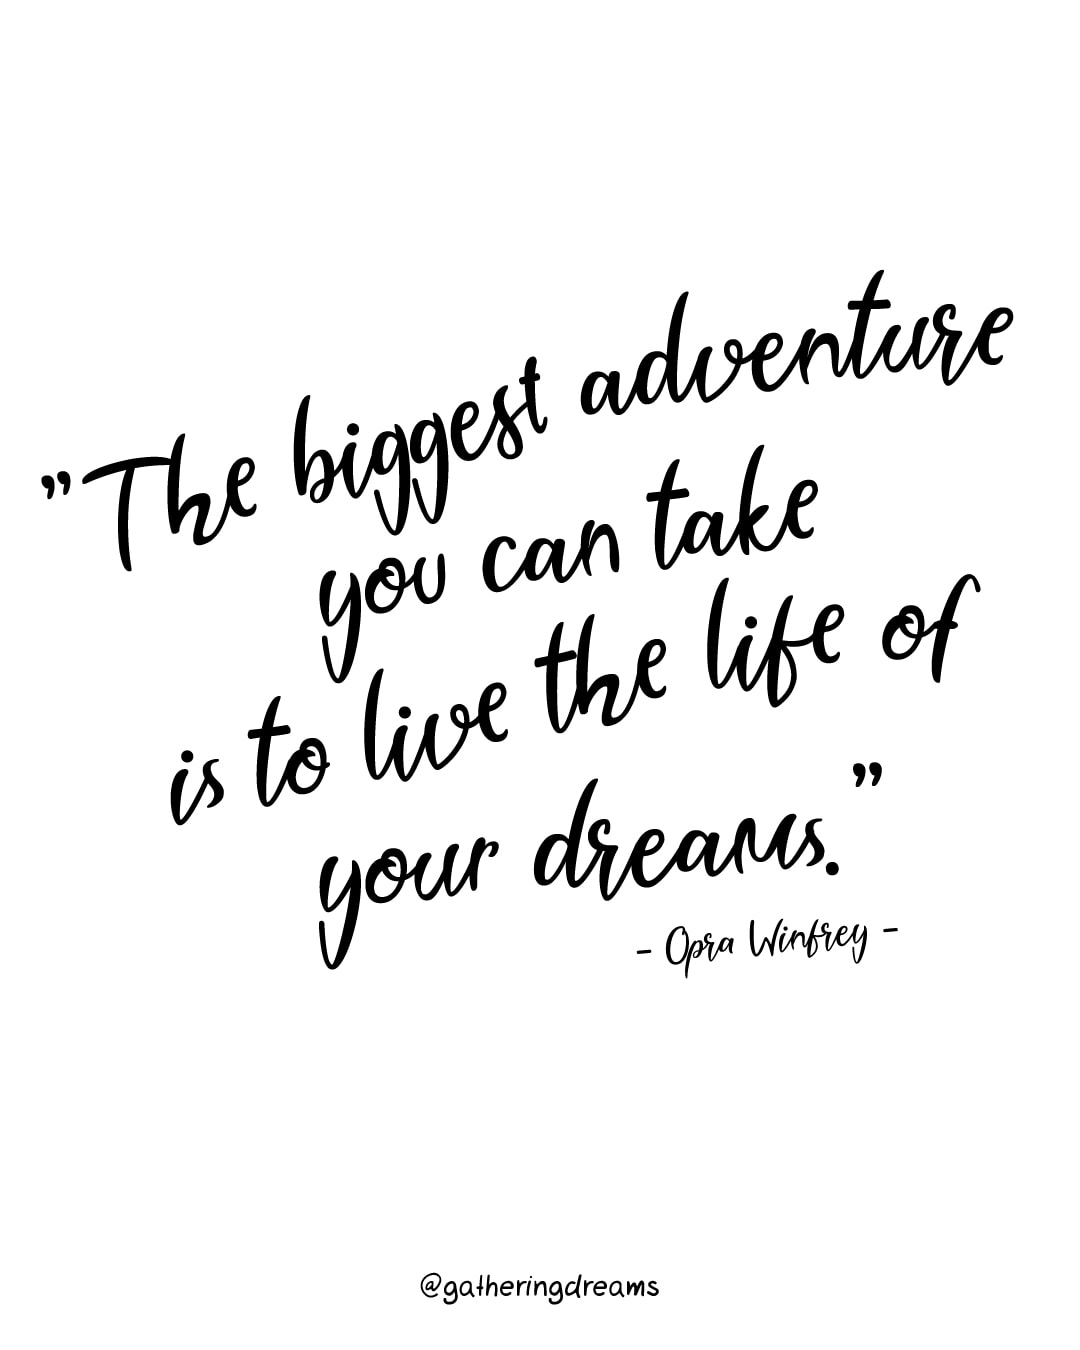 """The biggest adventure you can take is to live the life of your dreams."" Oprah Winfrey - The best dream quotes of all times #inspiration #inspirationalquotes #motivationalquotes #dreams"